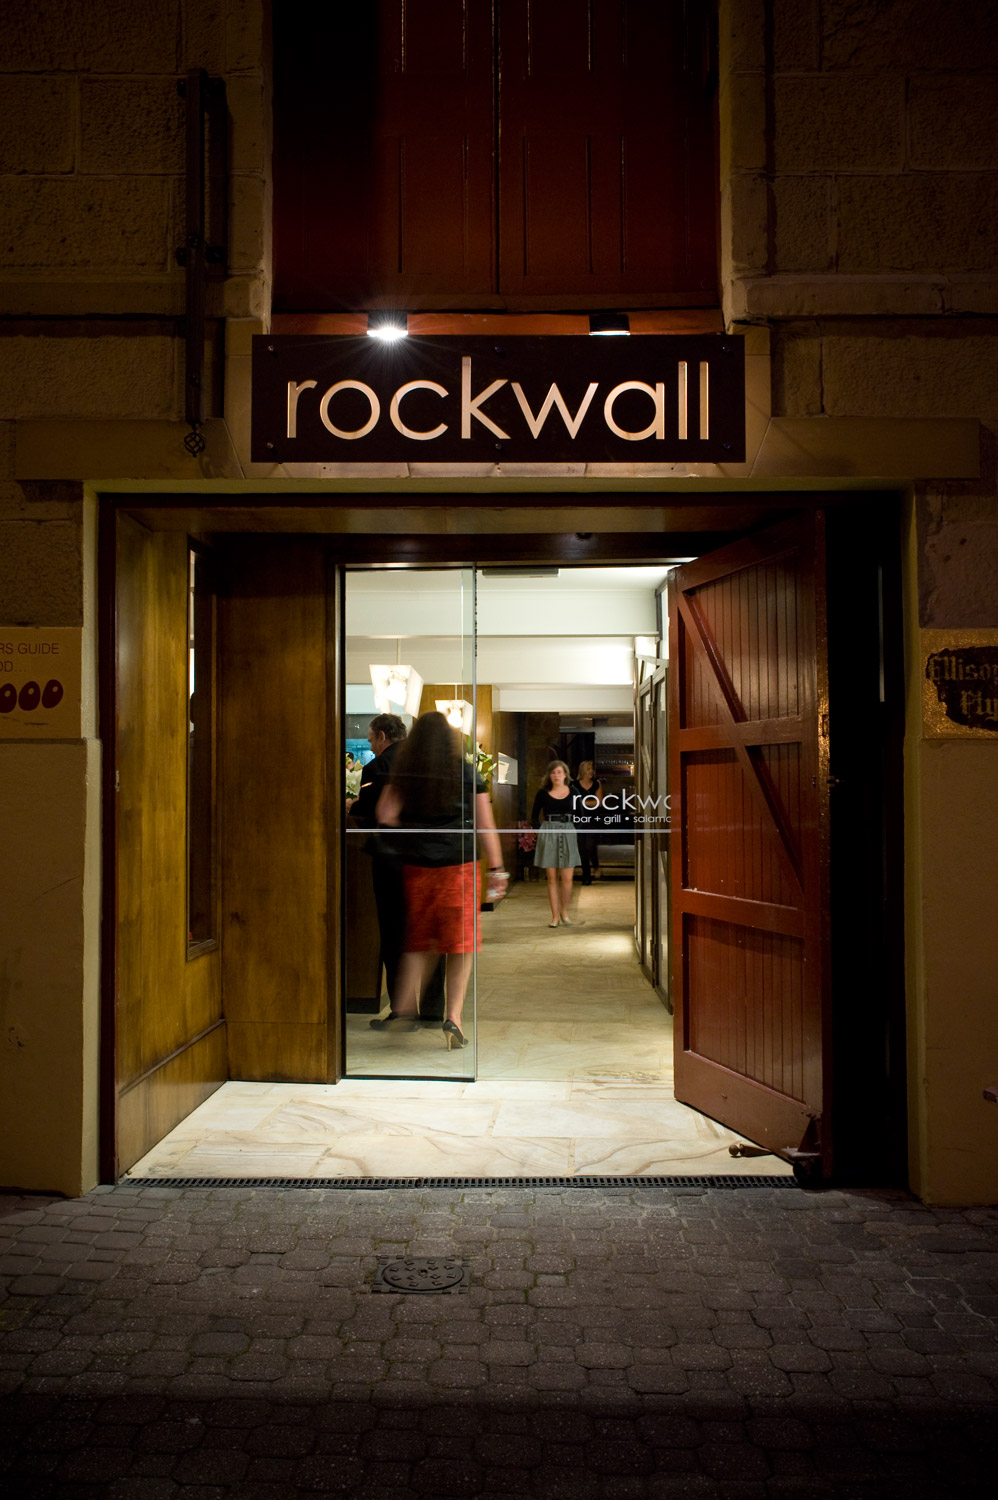 Rockwall Bar & Grill